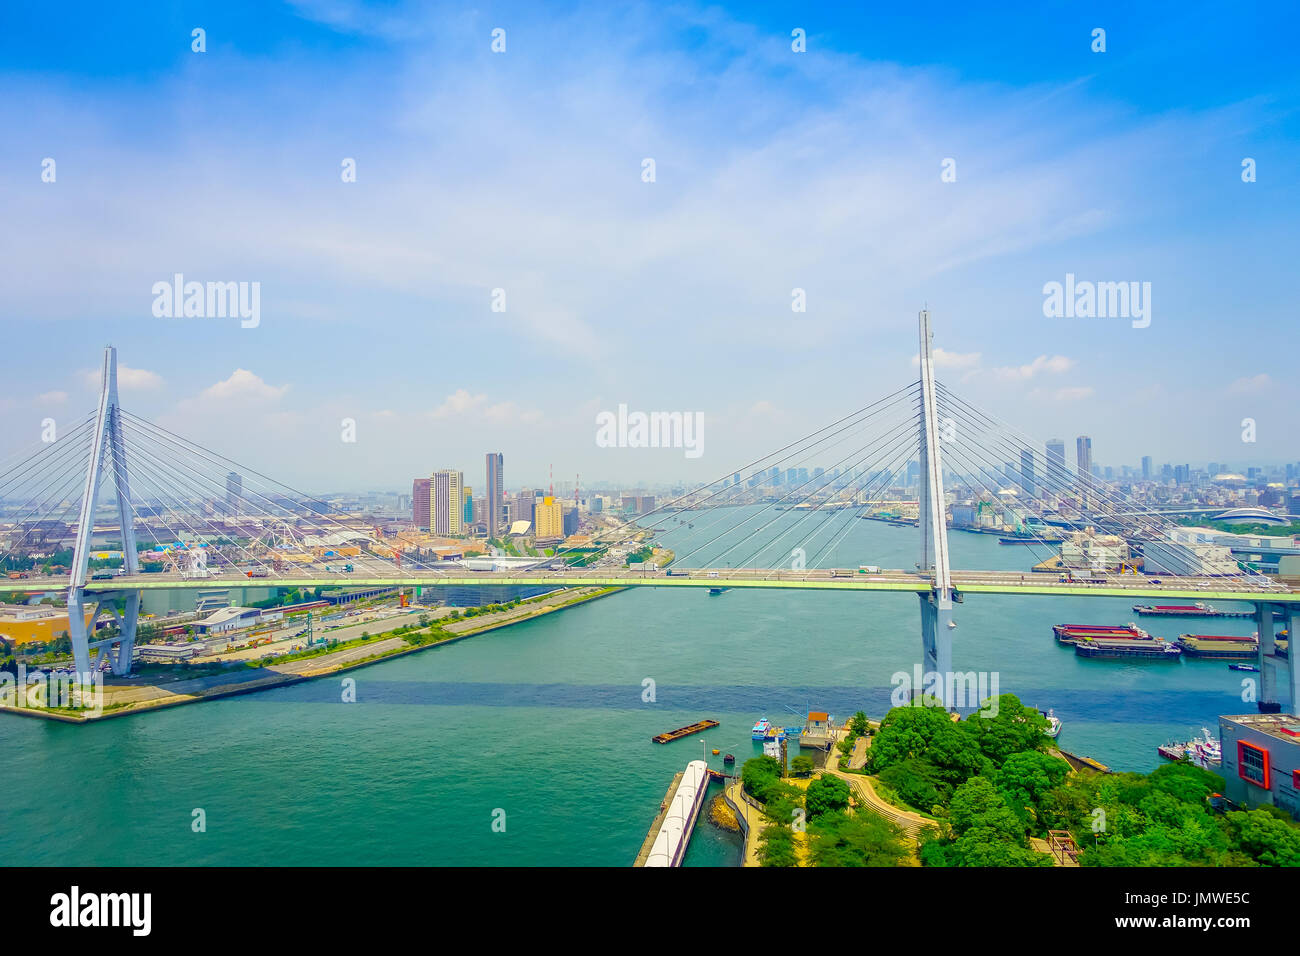 OSAKA, JAPAN - JULY 18, 2017: Beautiful view of the city of Osaka district in Osaka, Japan in a beautiful day - Stock Image